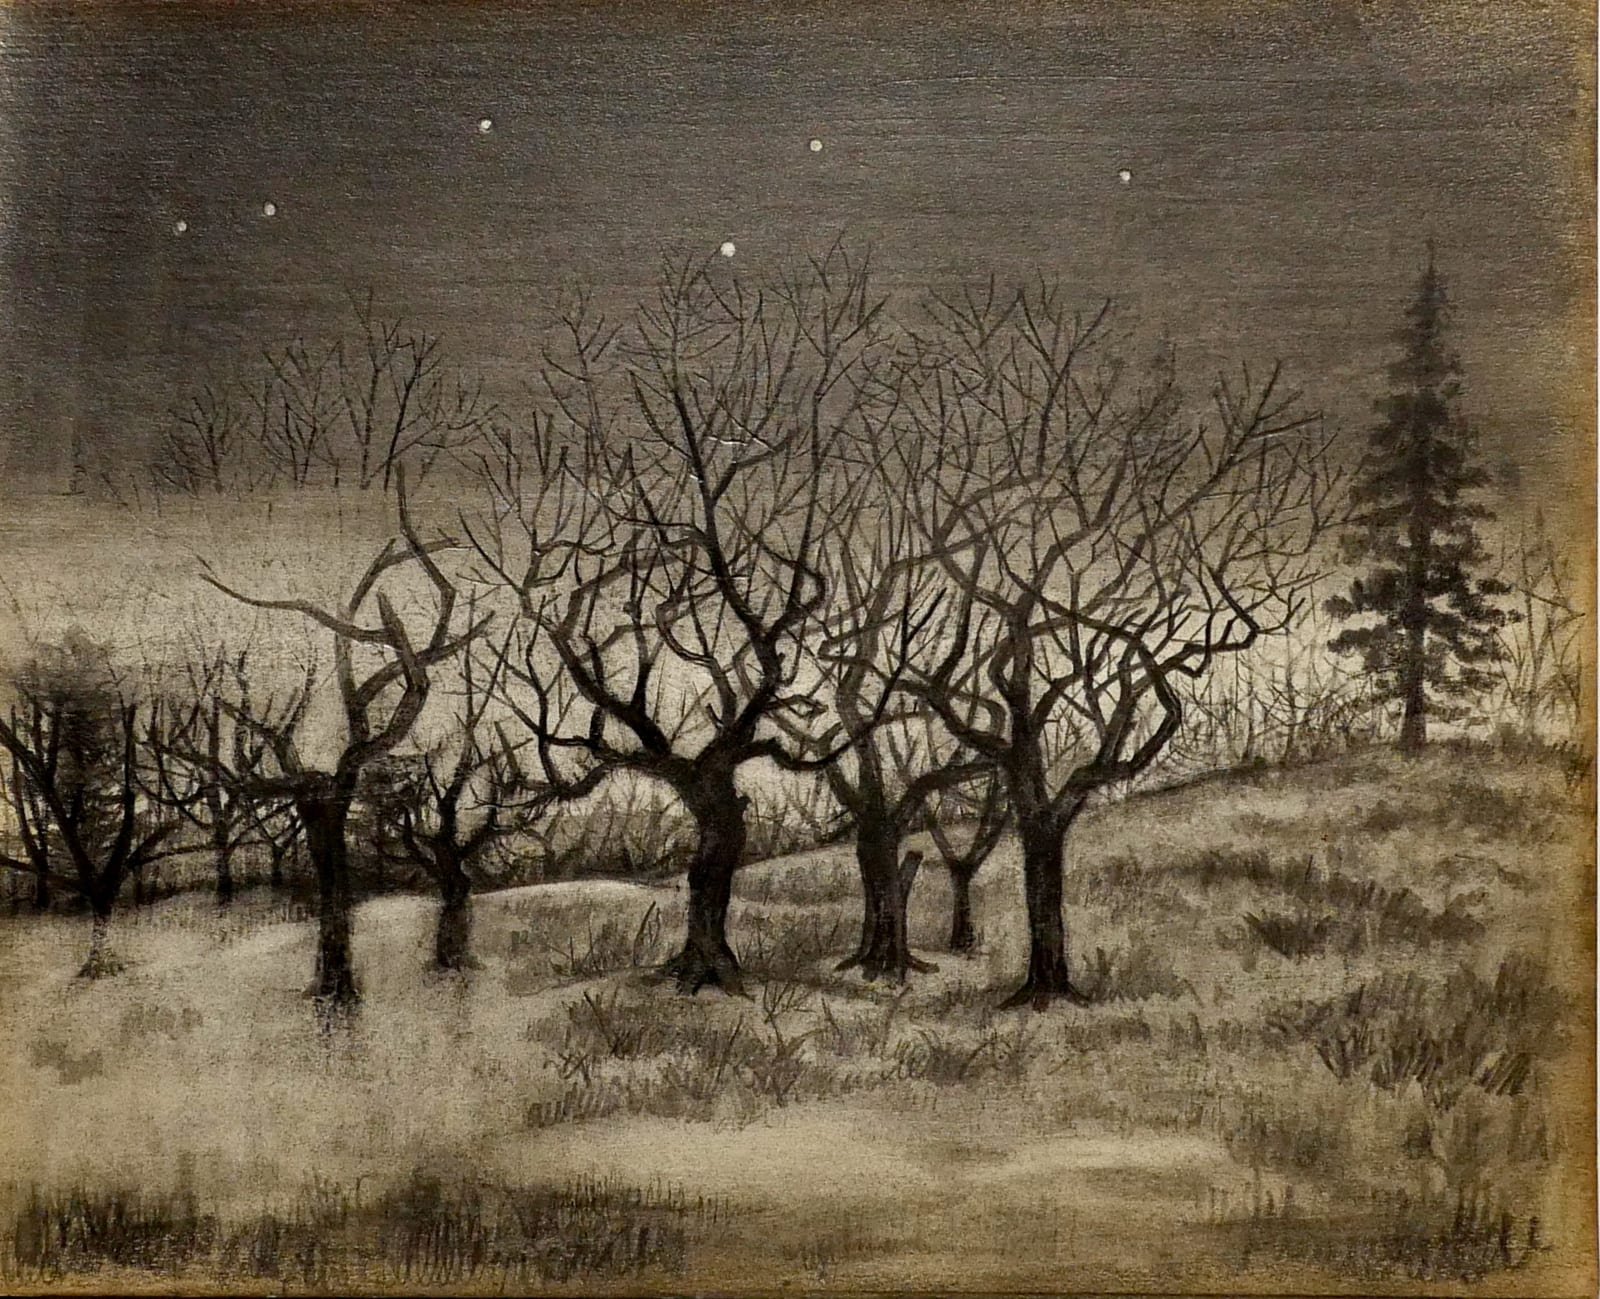 Old Wepka Orchard (night) ca. 1960 Pencil on sketch paper 8 x 9 3/4 in (RK 115) $6,500